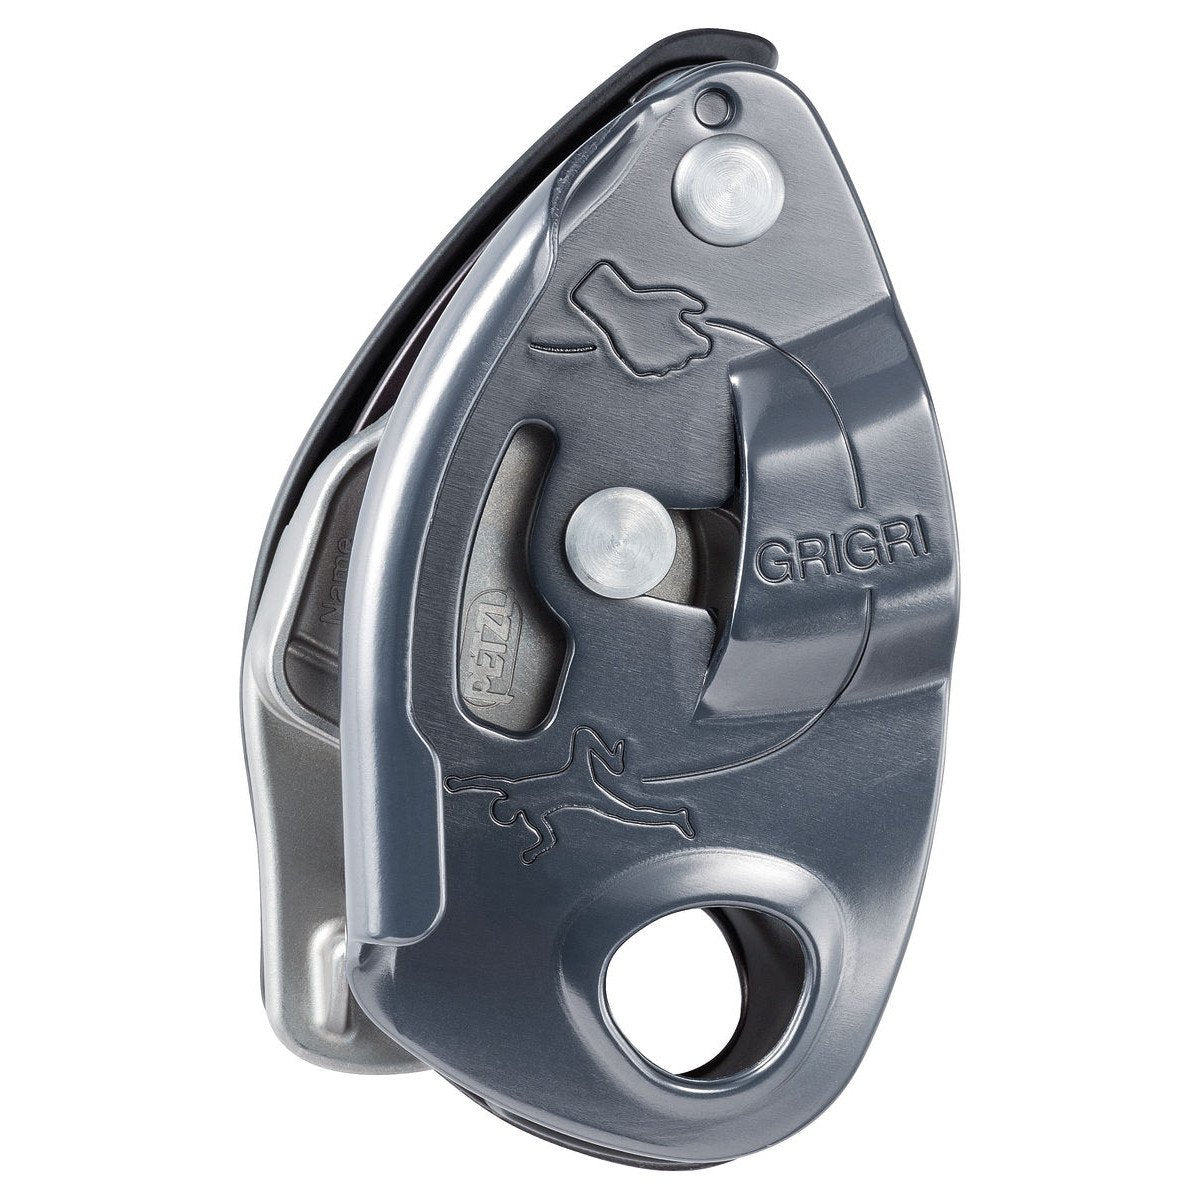 Petzl Grigri belay device, showing side view in silver colour